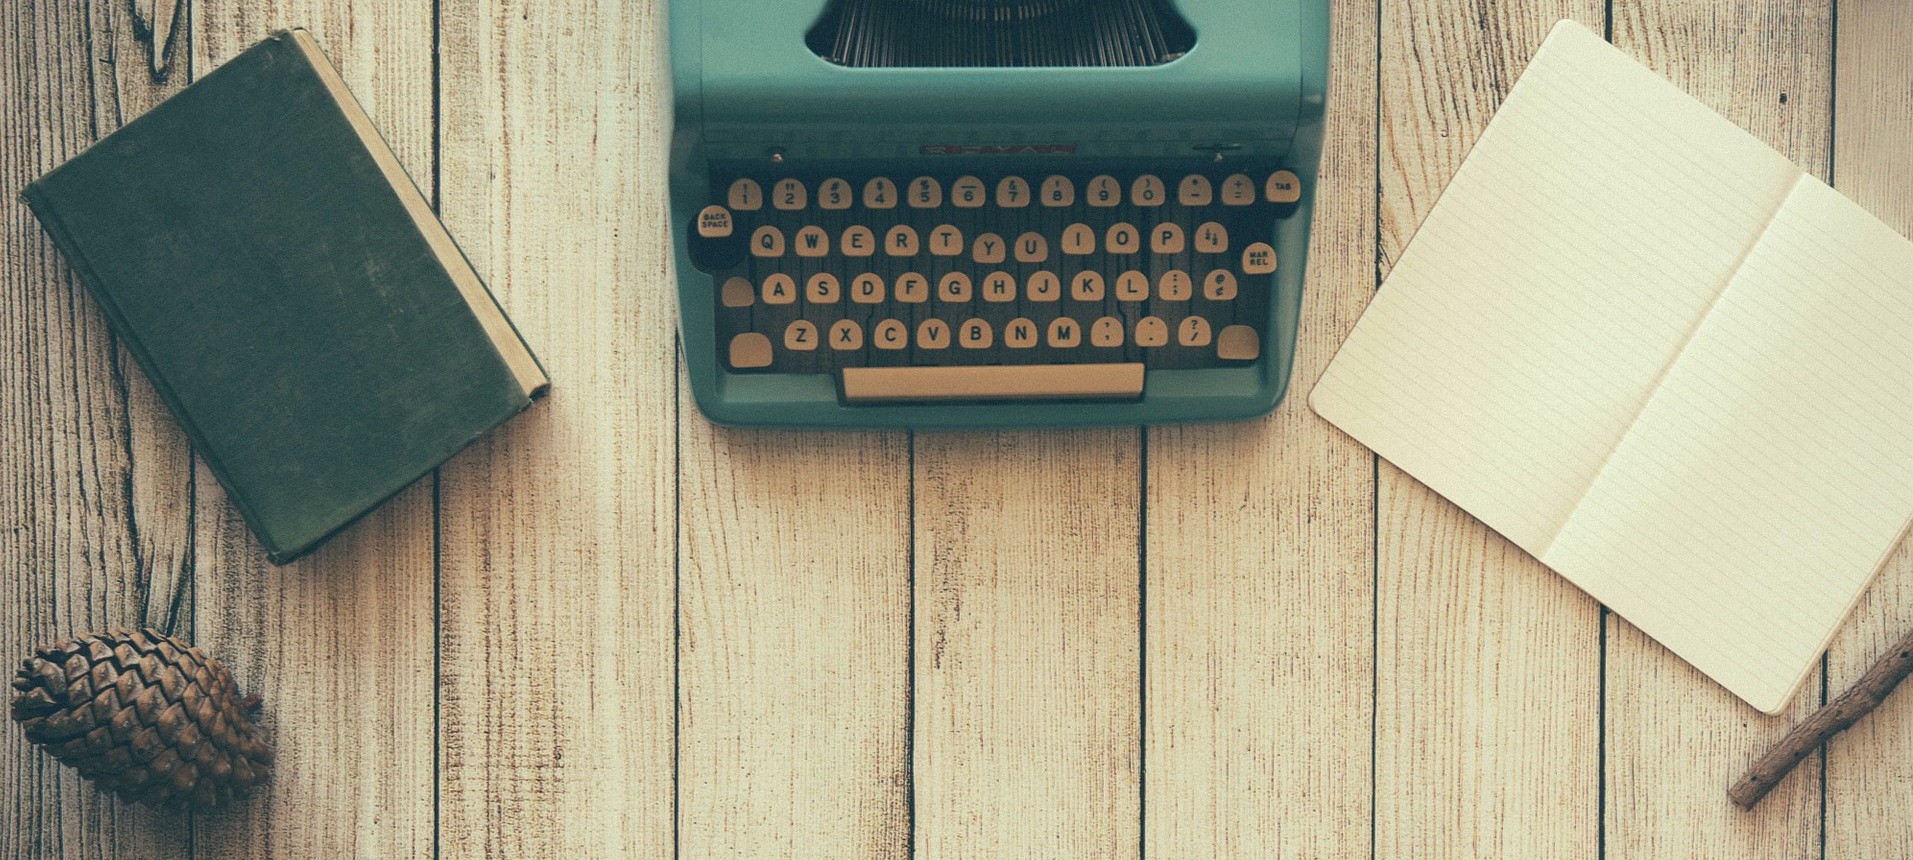 11 Successful Writers Share Their Writing Routines